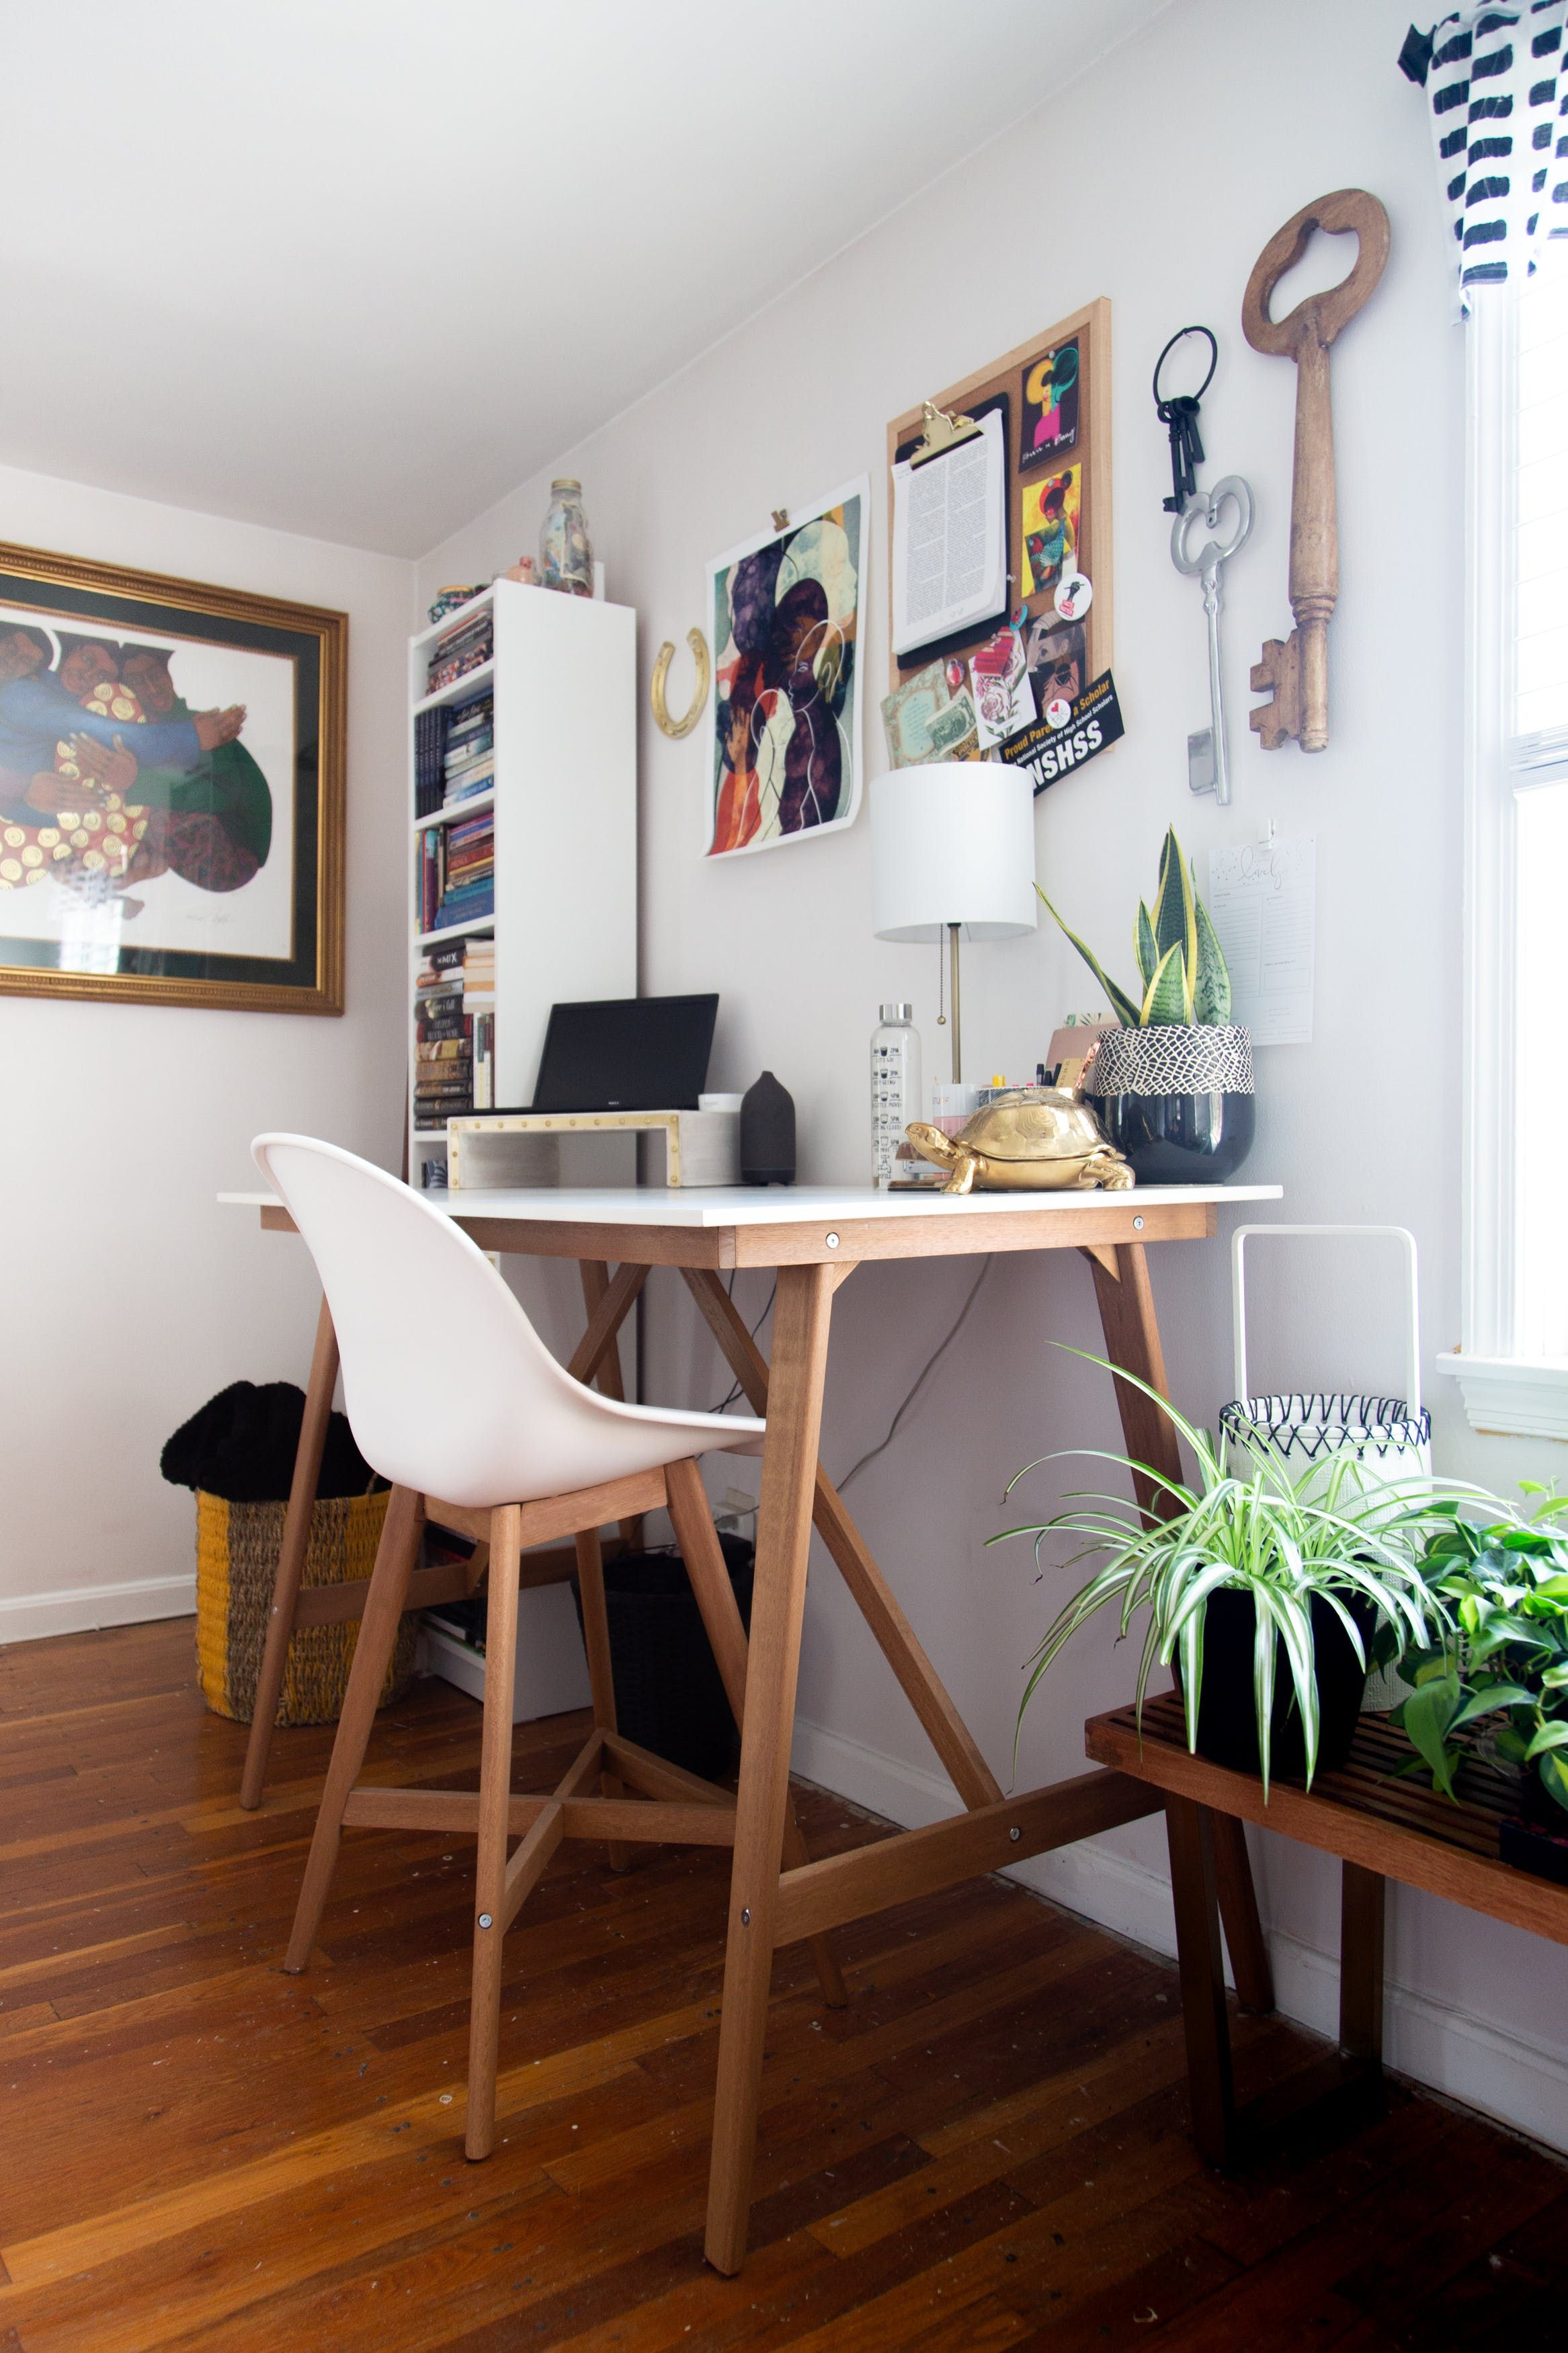 The Afro Minimalist's Small Apartment Is a Peaceful